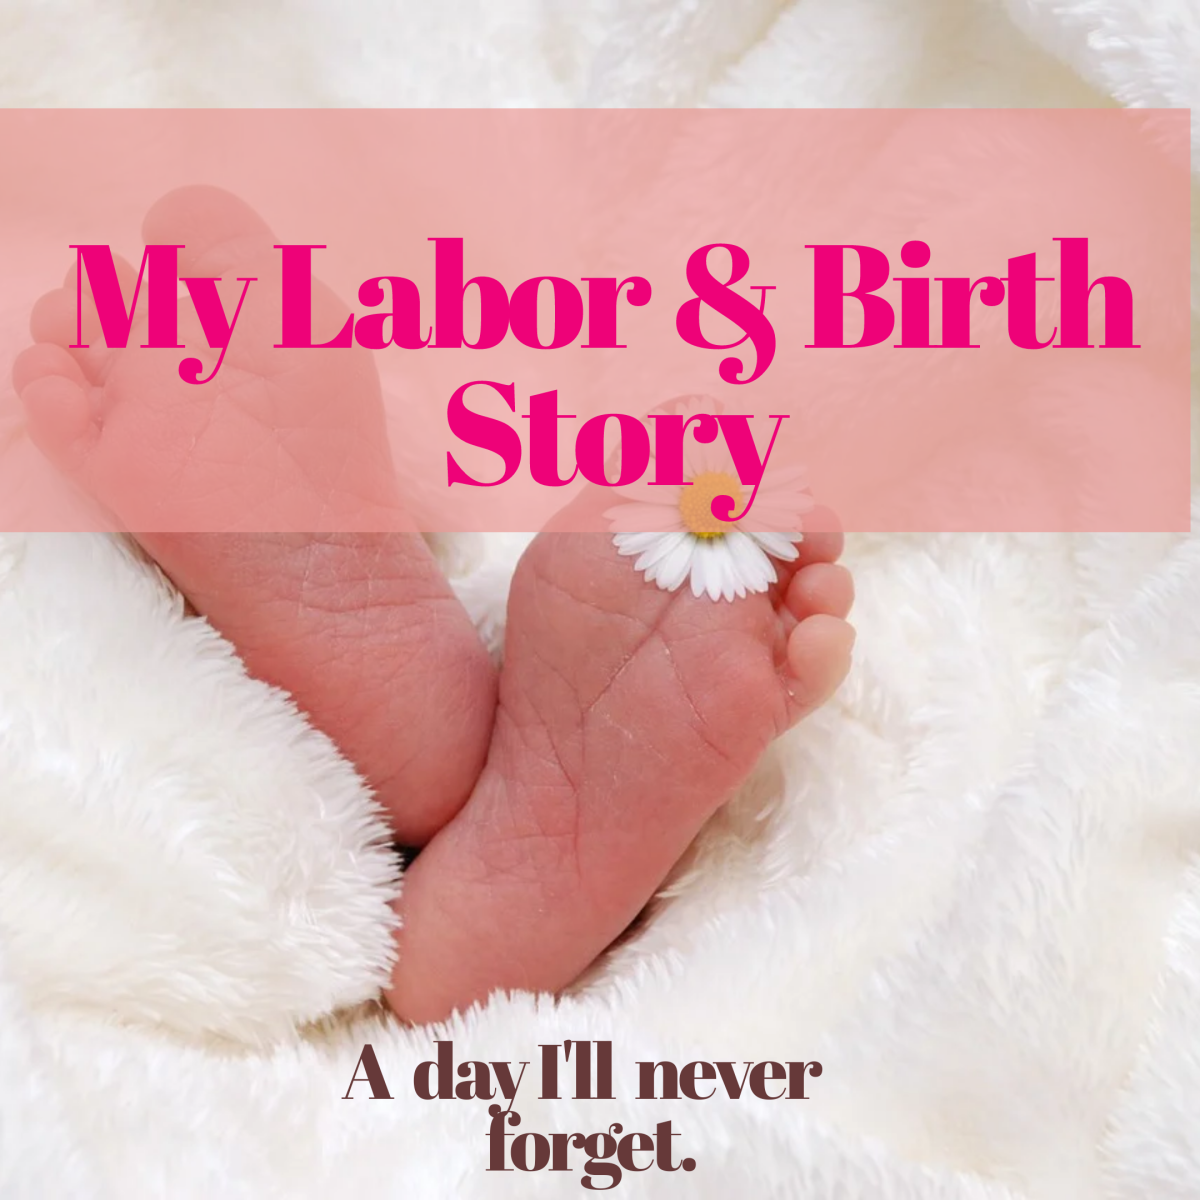 My labour and birth story